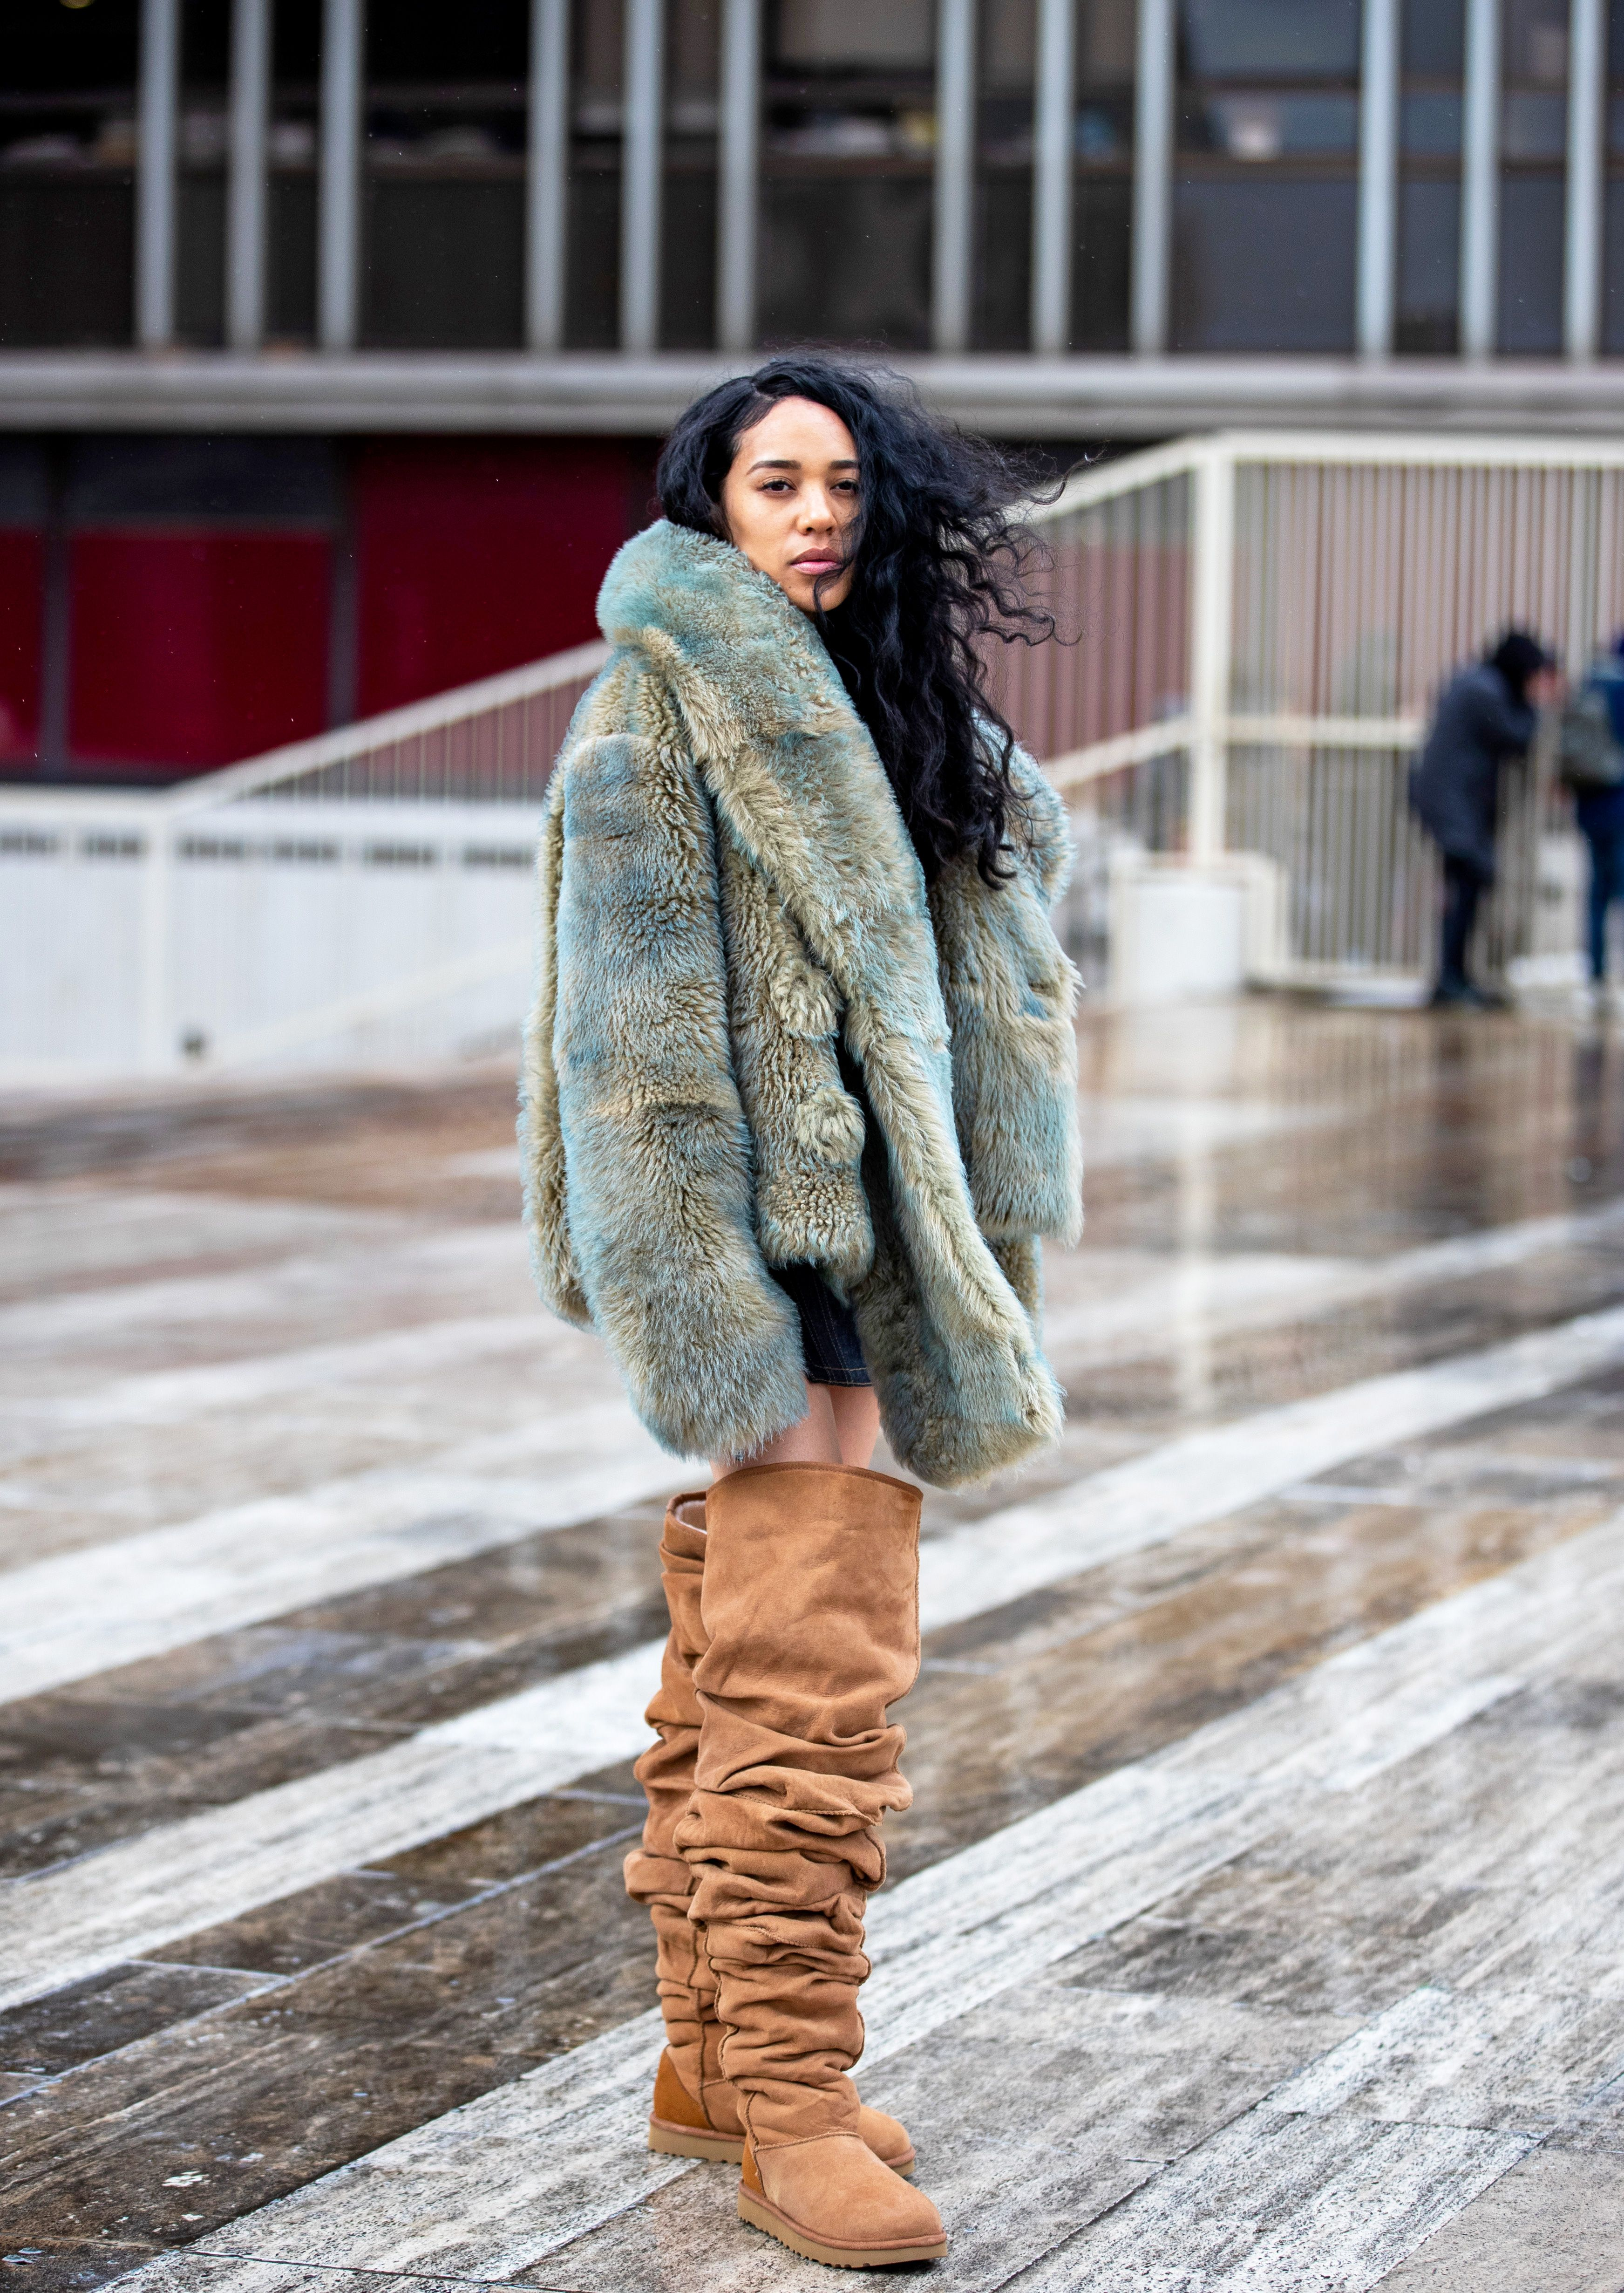 aleali may in uggs